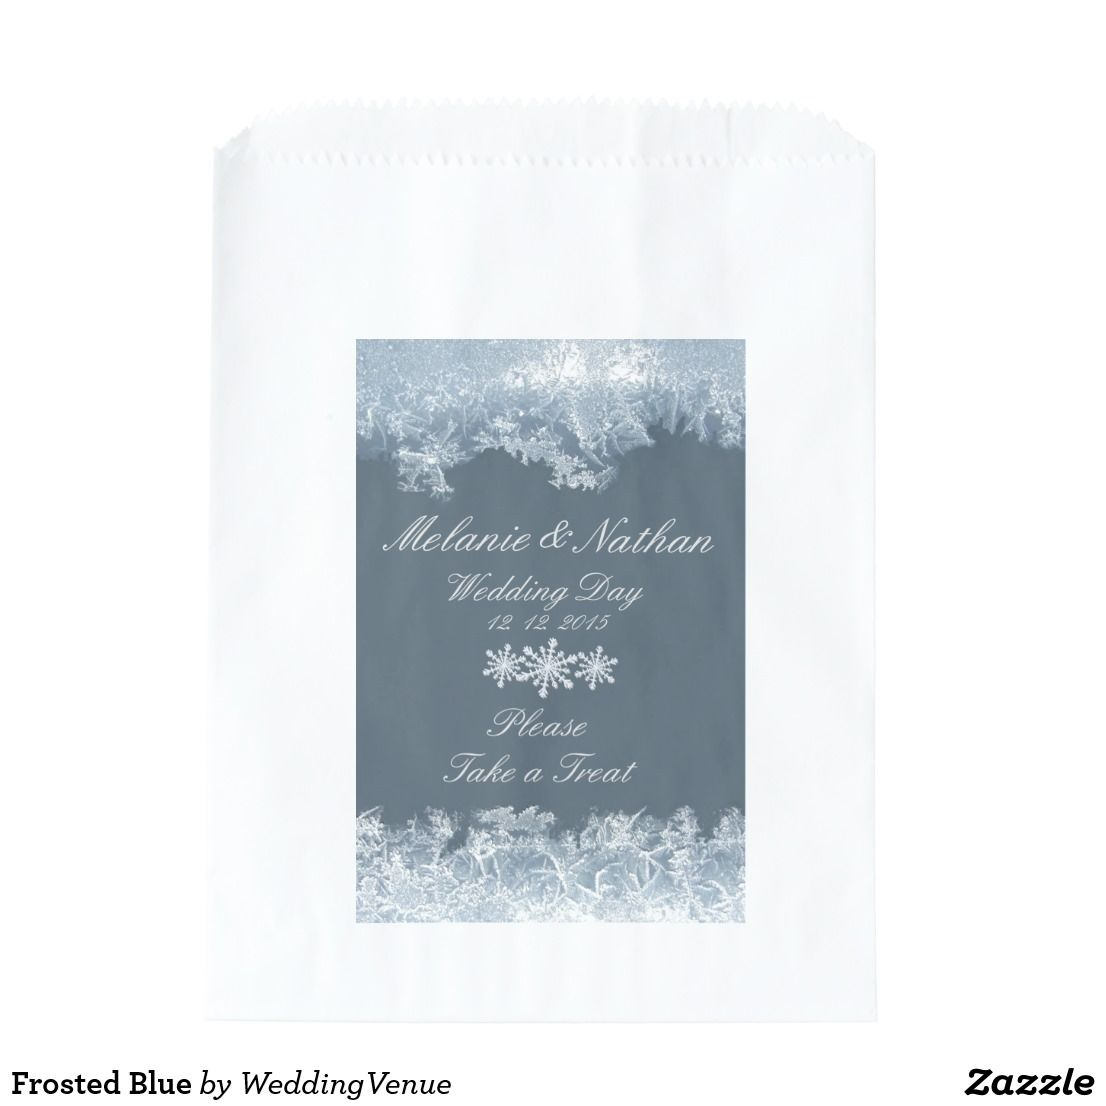 Frosted Blue Favor Bag | Blue winter weddings, Winter wedding favors ...